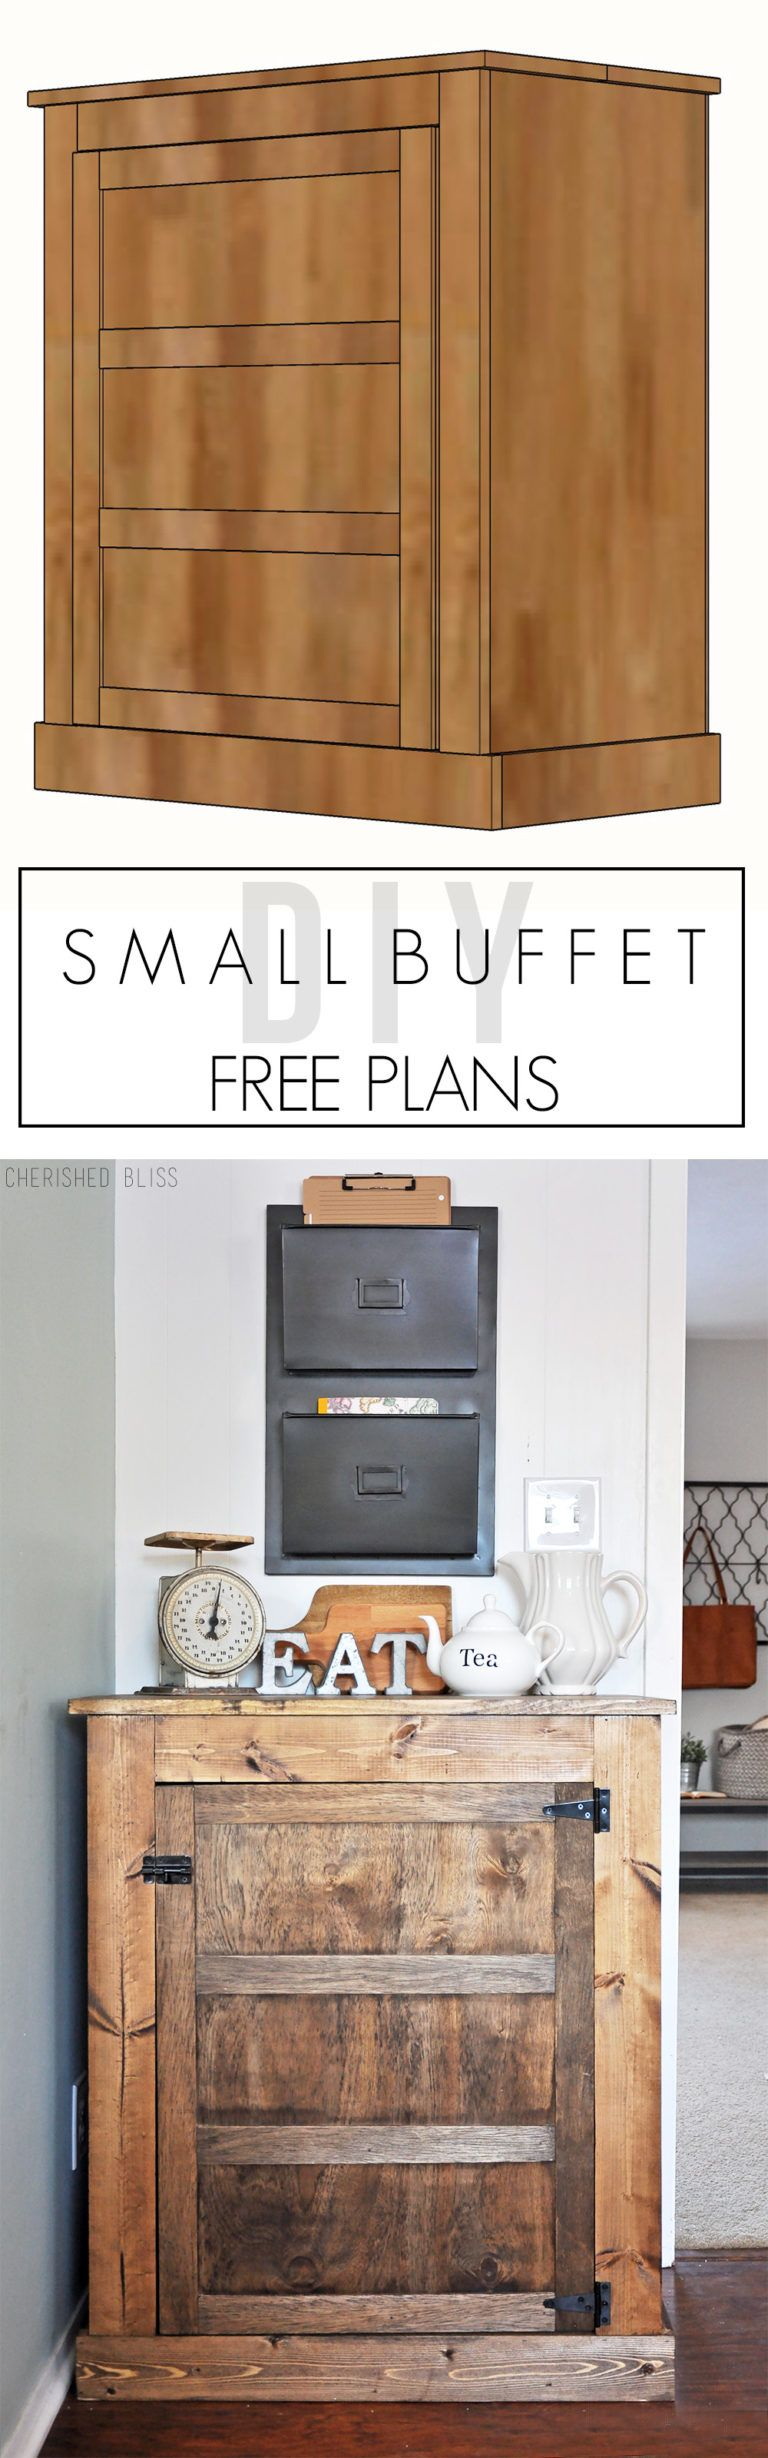 How to Build a Small Farmhouse Buffet | Pinterest | Selbermachen ...